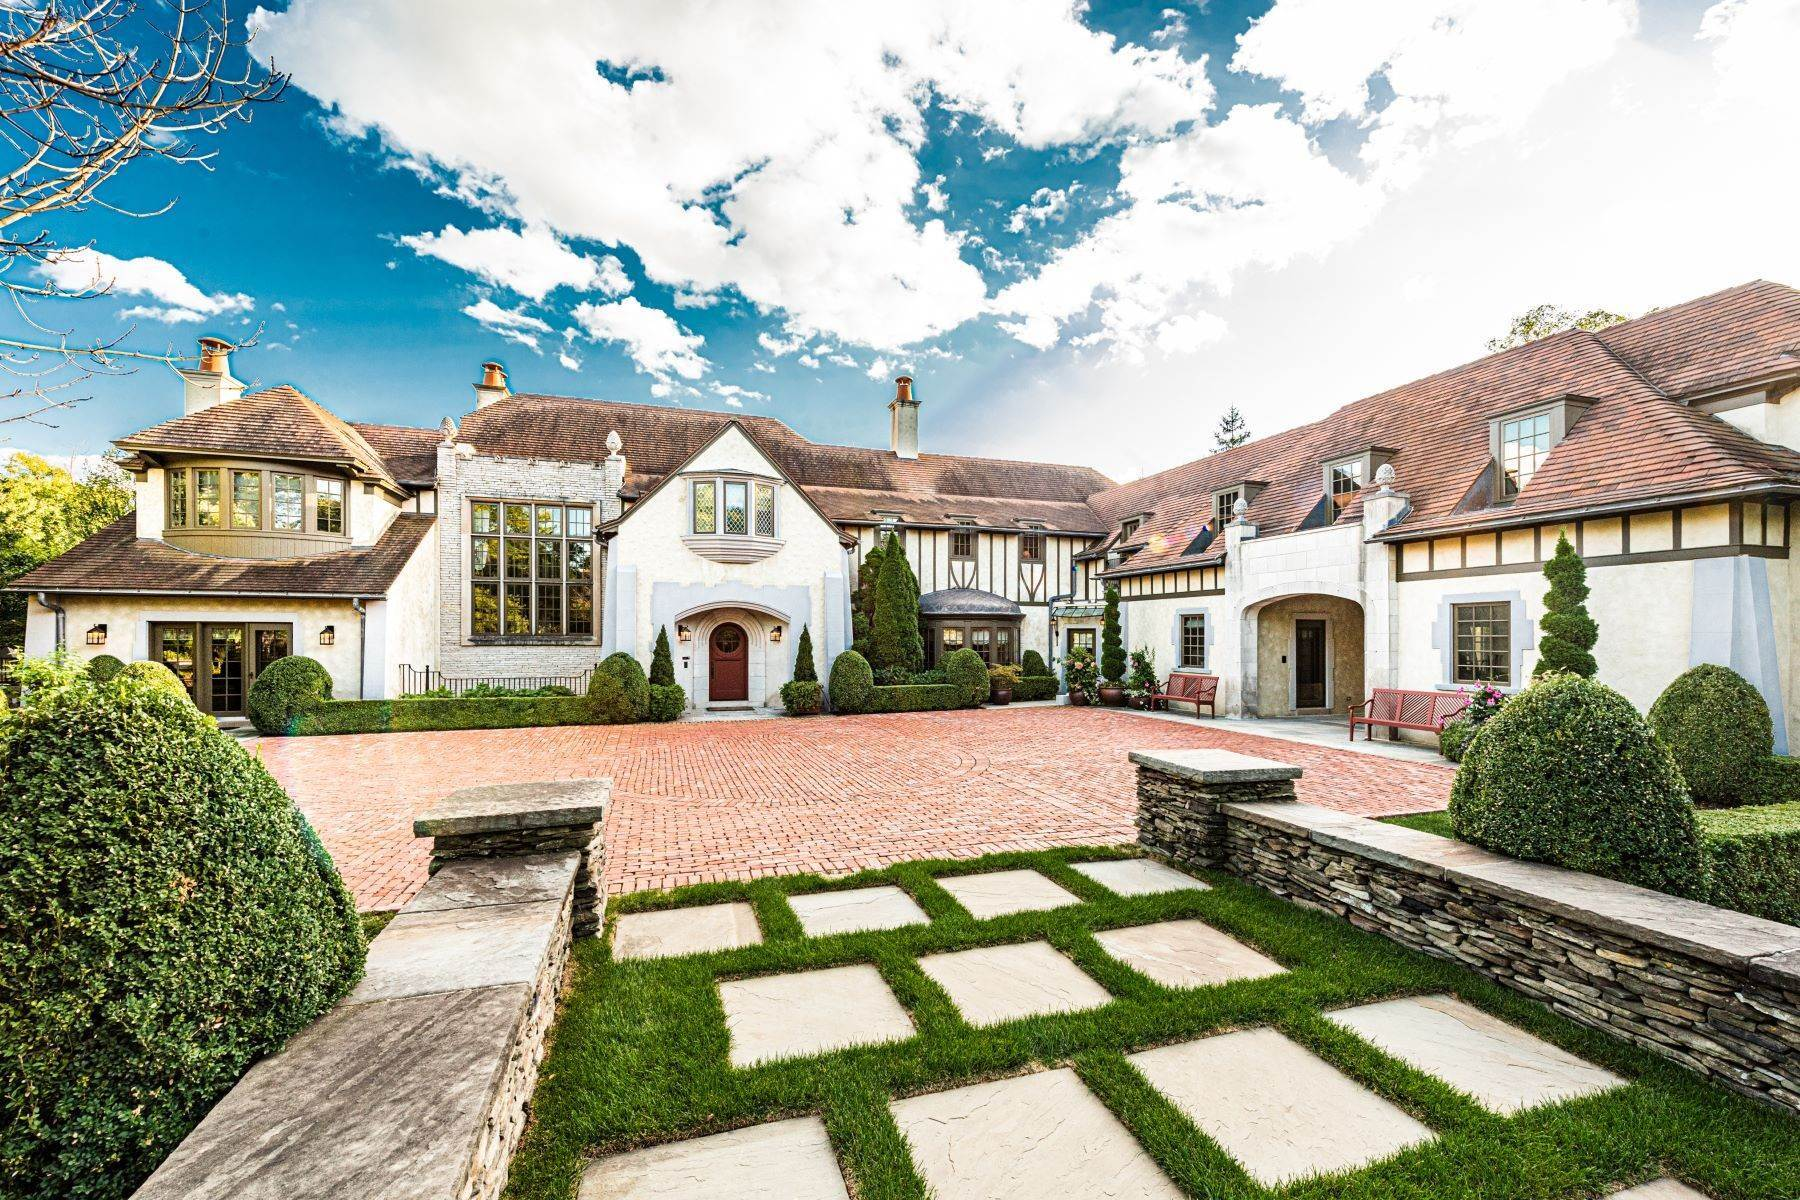 Single Family Homes für Verkauf beim Versailles Inspired Estate in Prestigious Hinsdale 340 E 8th St Hinsdale - DuPage County, Illinois 60521 Vereinigte Staaten